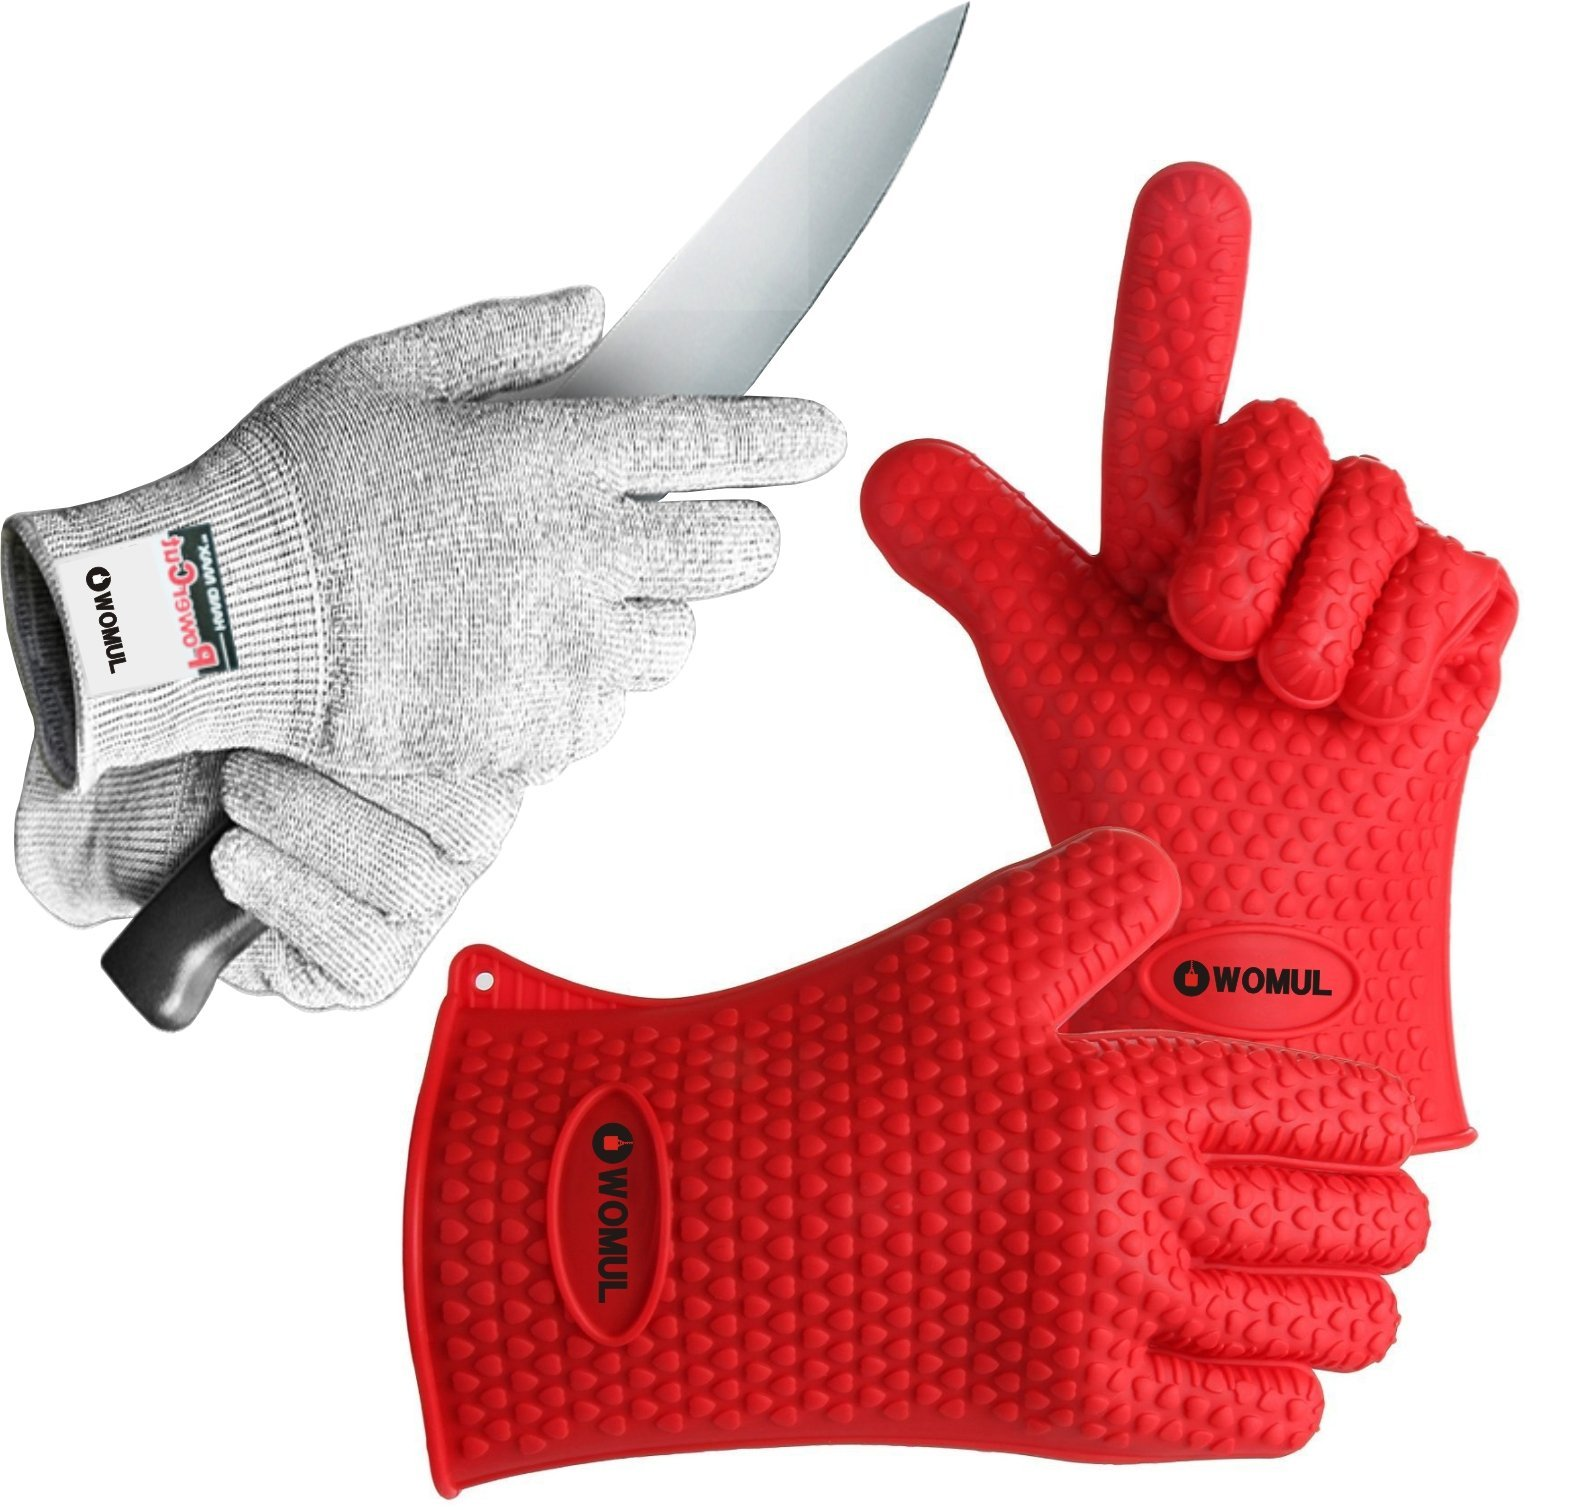 WOMUL Safety gloves set ( heat resistant bbq silicone gloves + cut resistant gloves) (RED + GRAY)